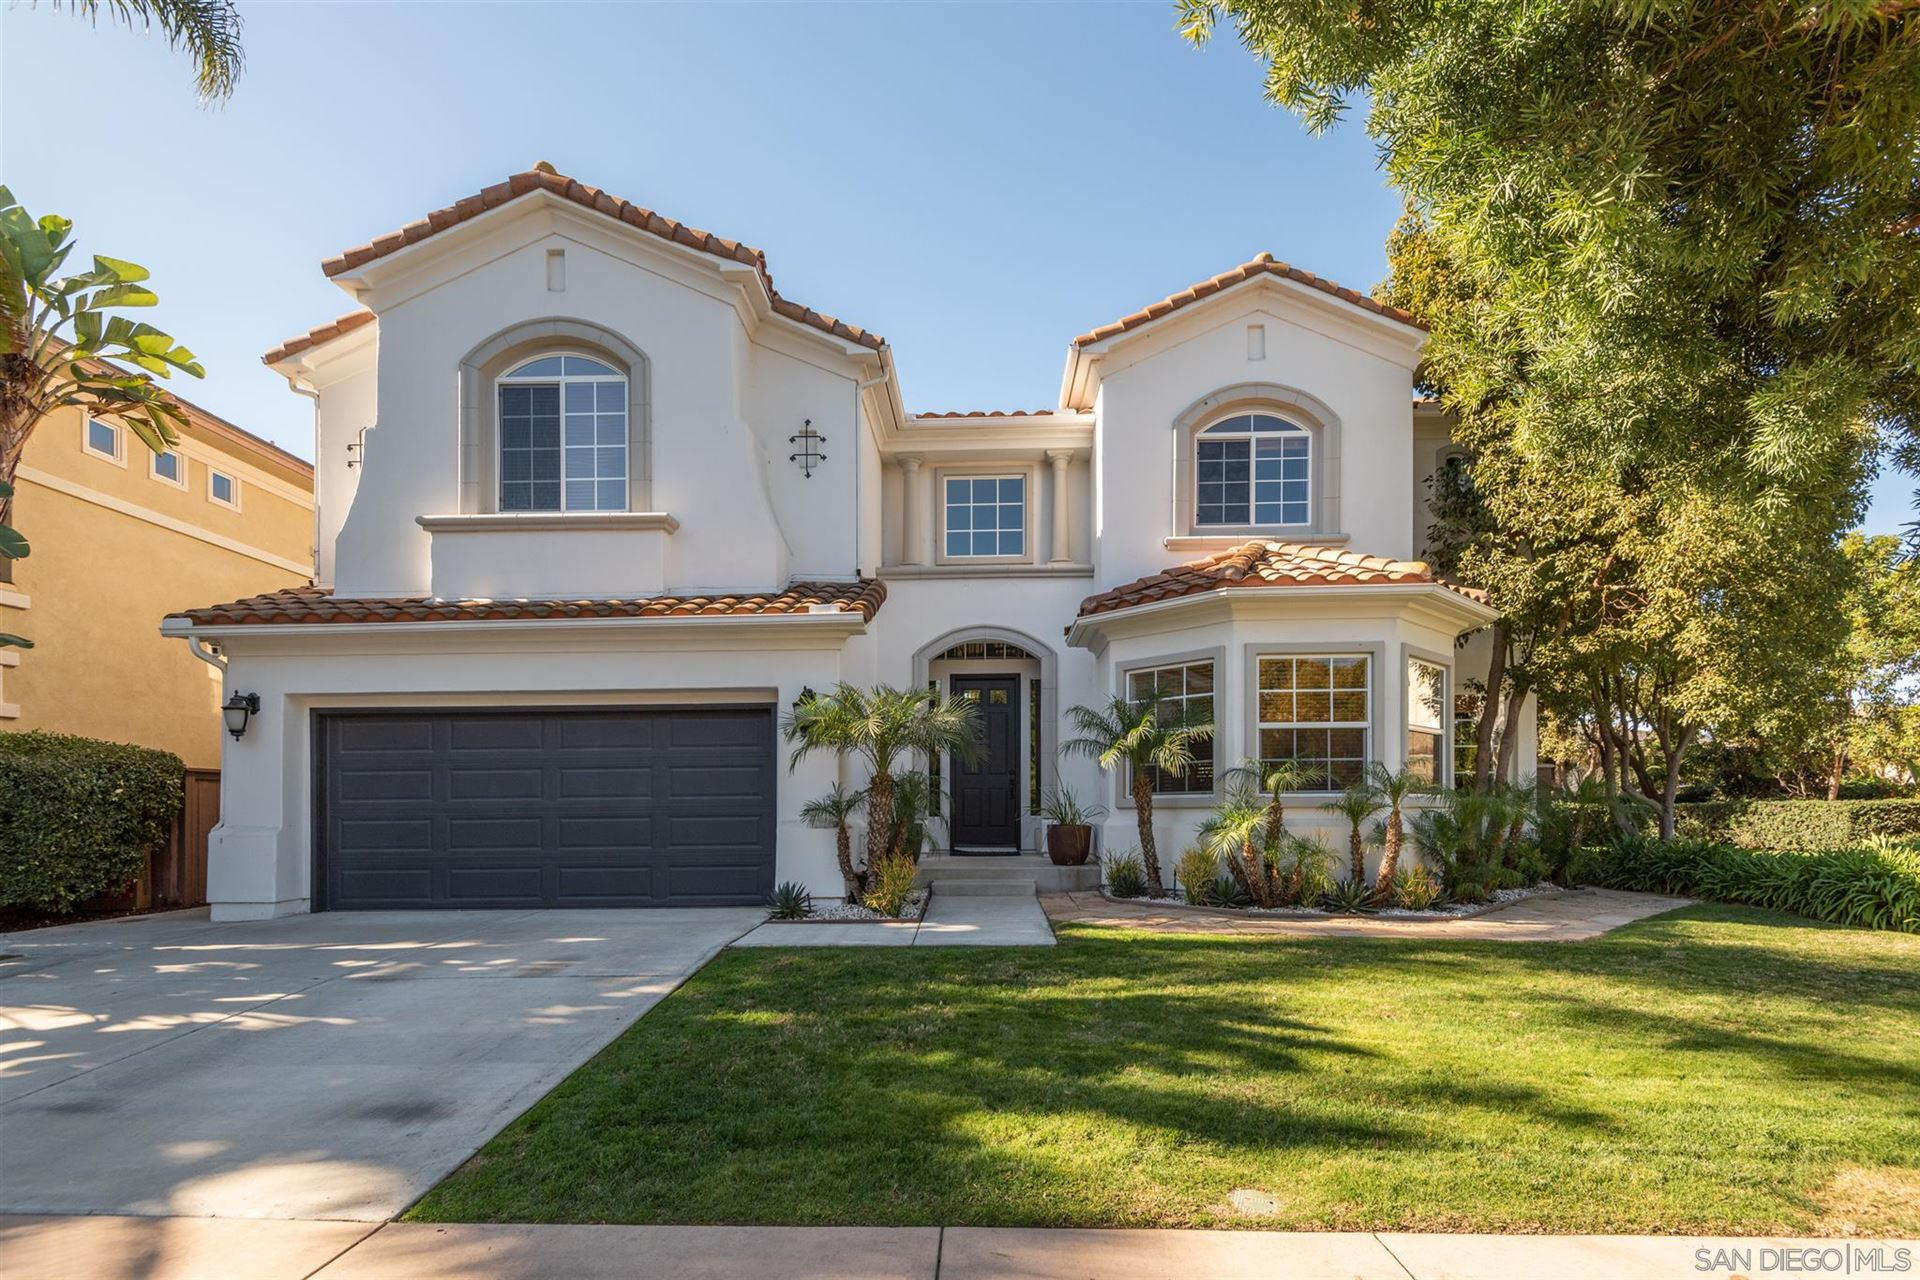 Photo of 570 Paloma Court, Encinitas, CA 92024 (MLS # 210000968)